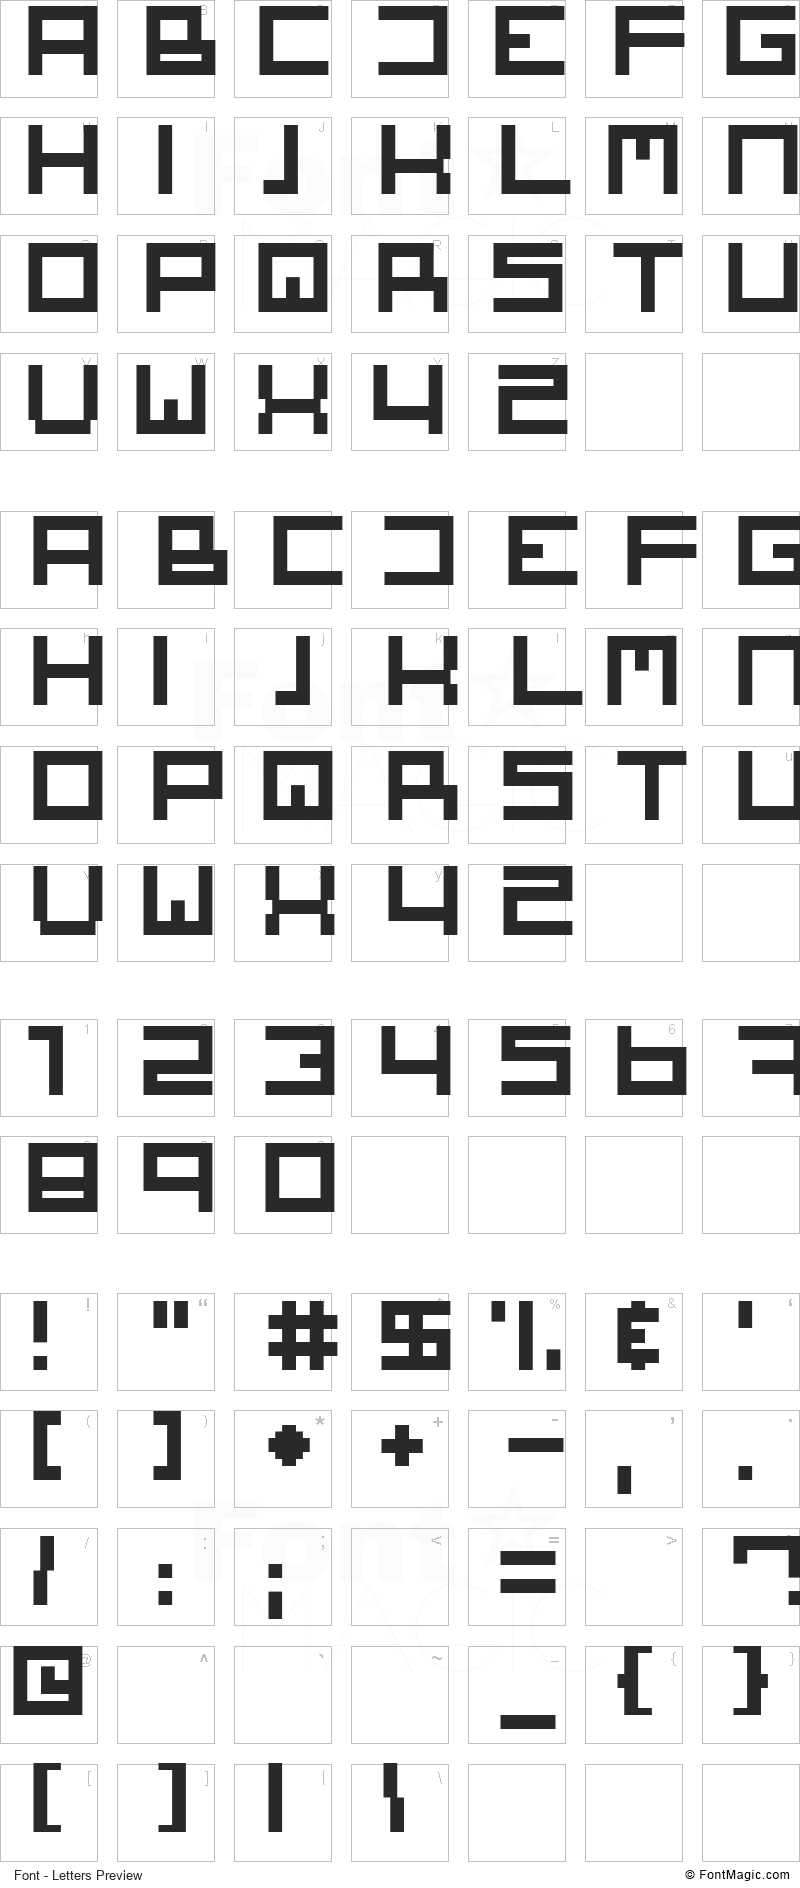 Square One Font - All Latters Preview Chart